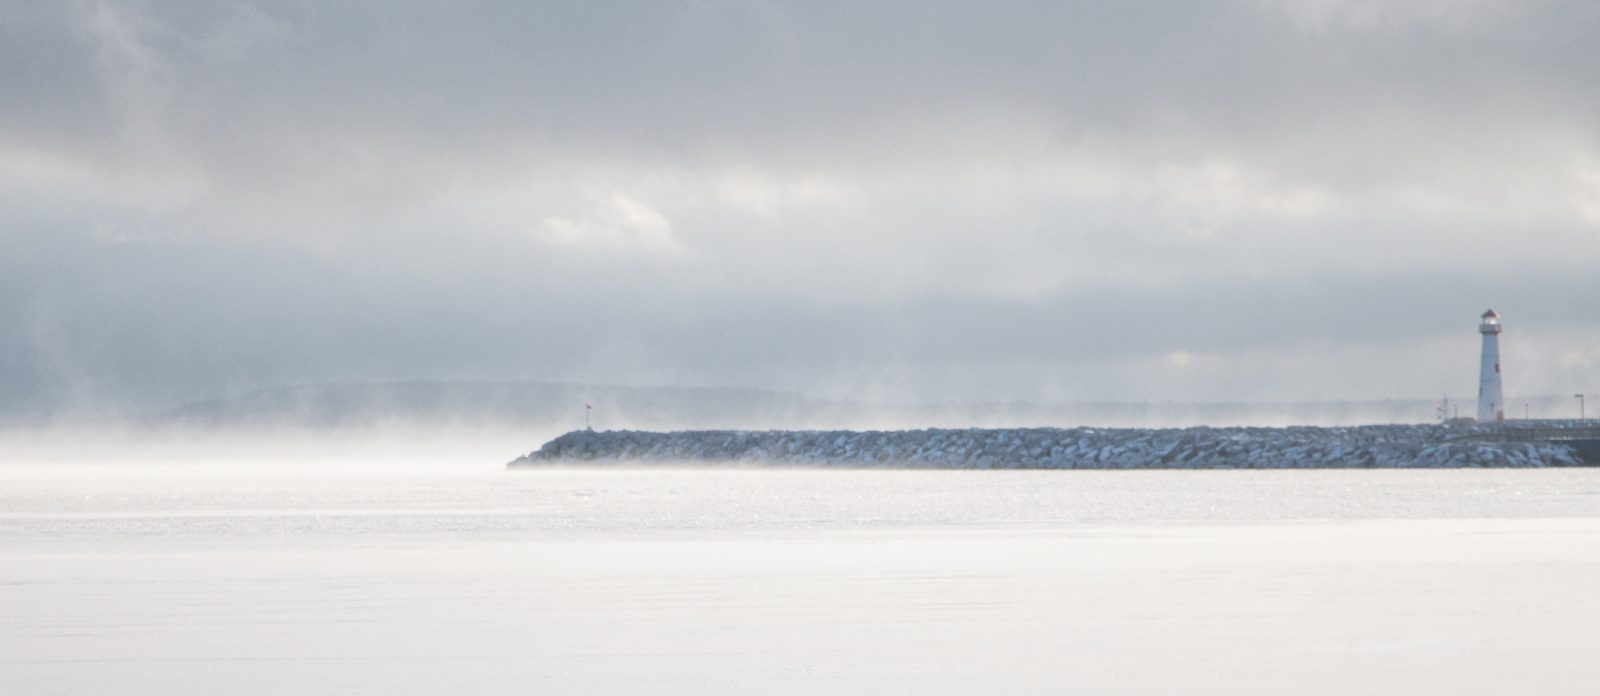 Icy Mist on Lake Huron